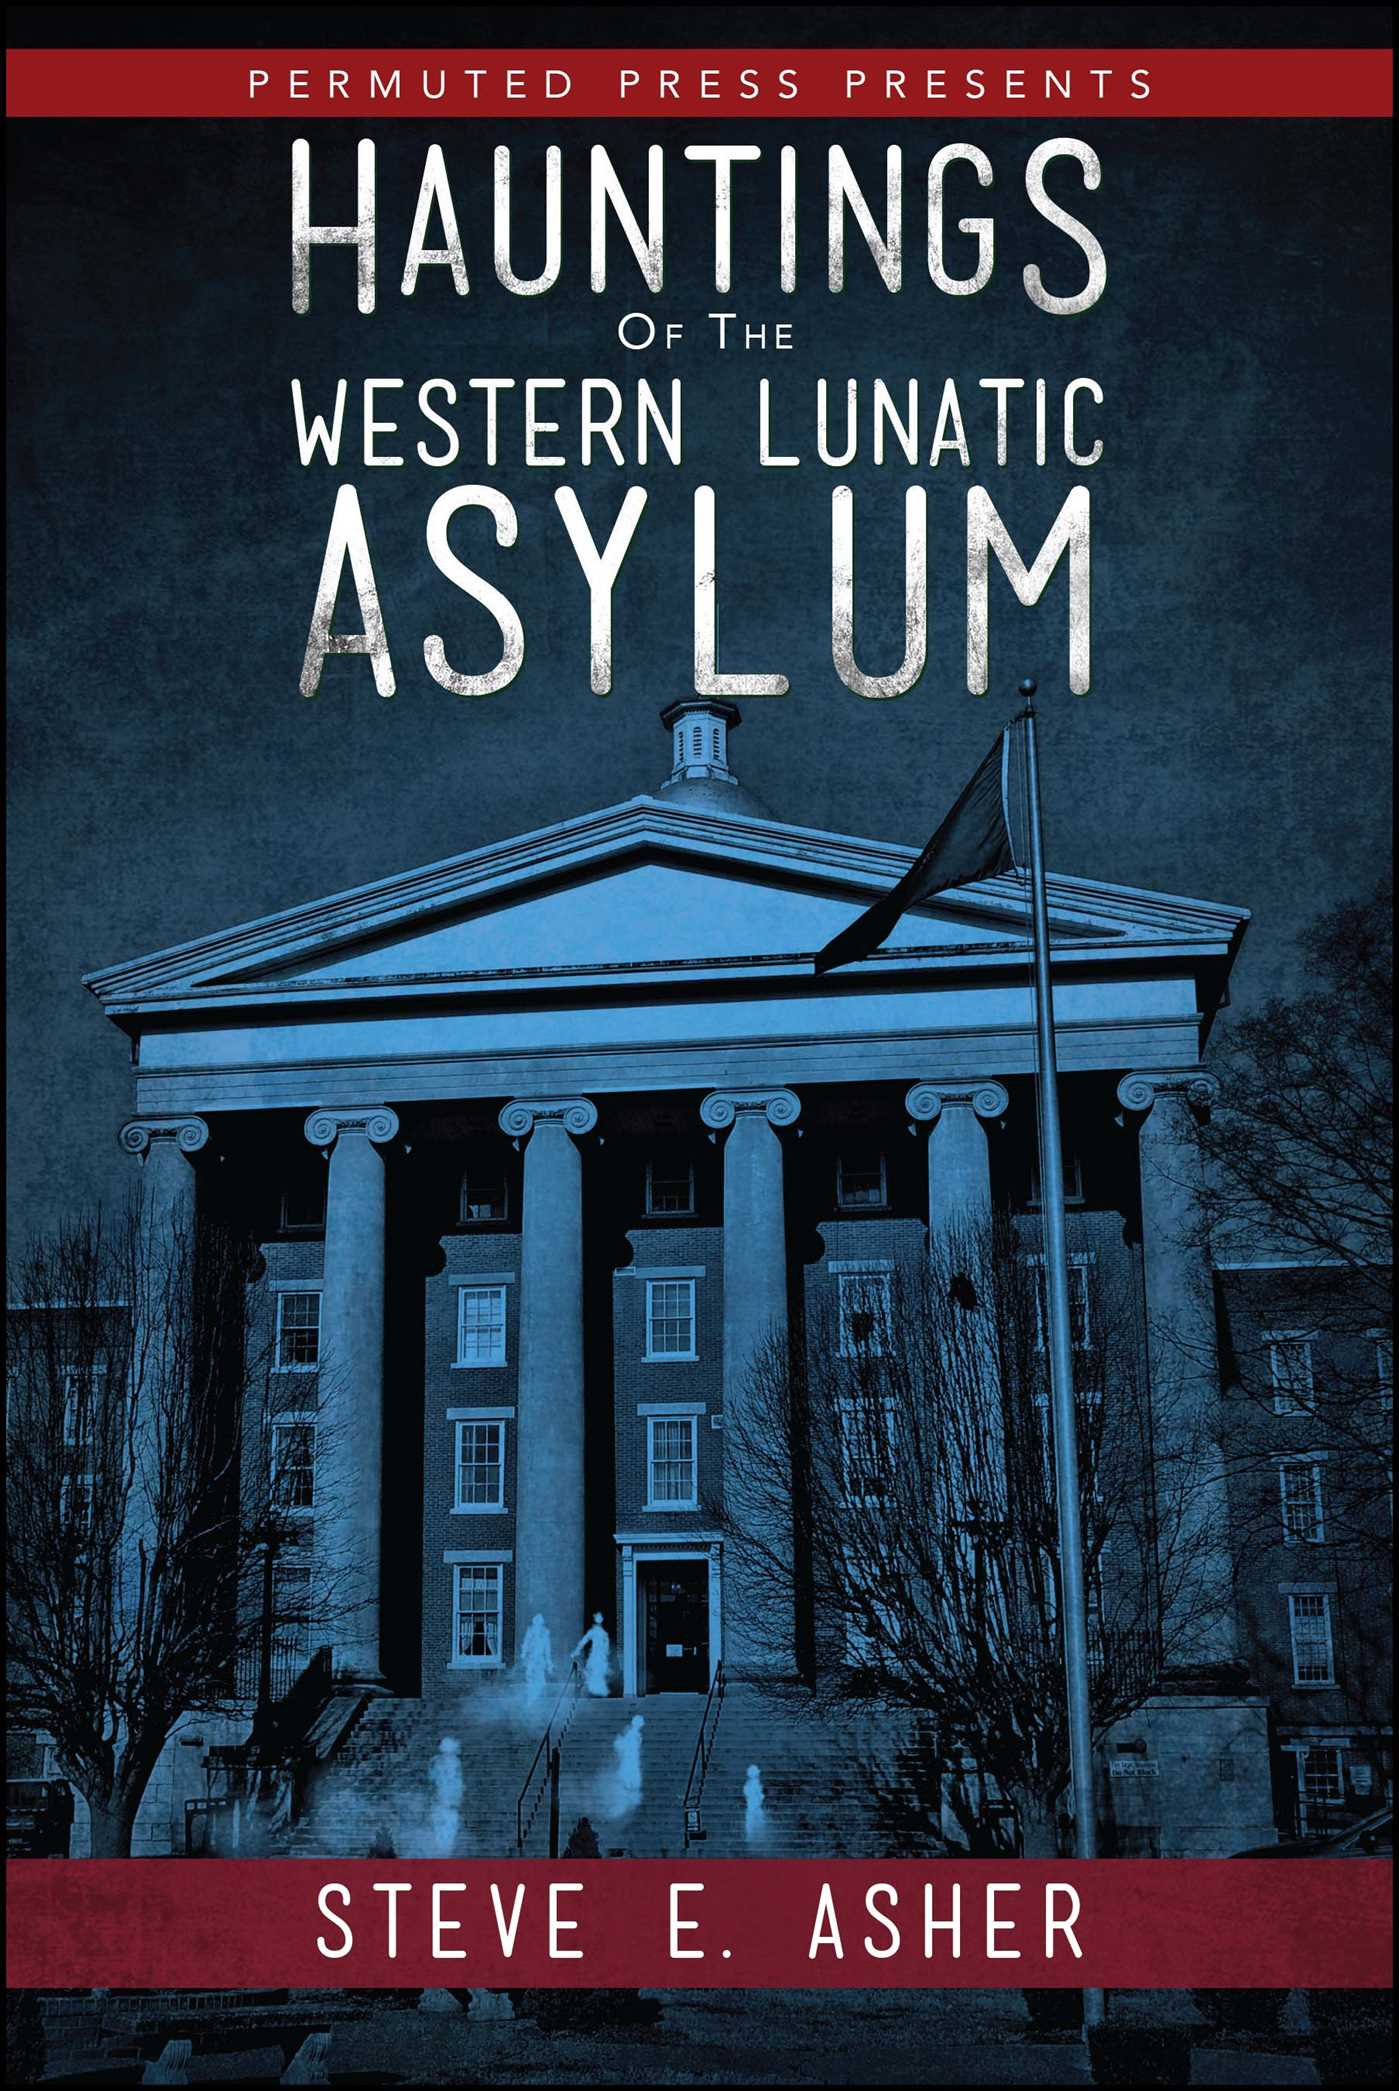 Hauntings of the western lunatic asylum 9781682615140 hr